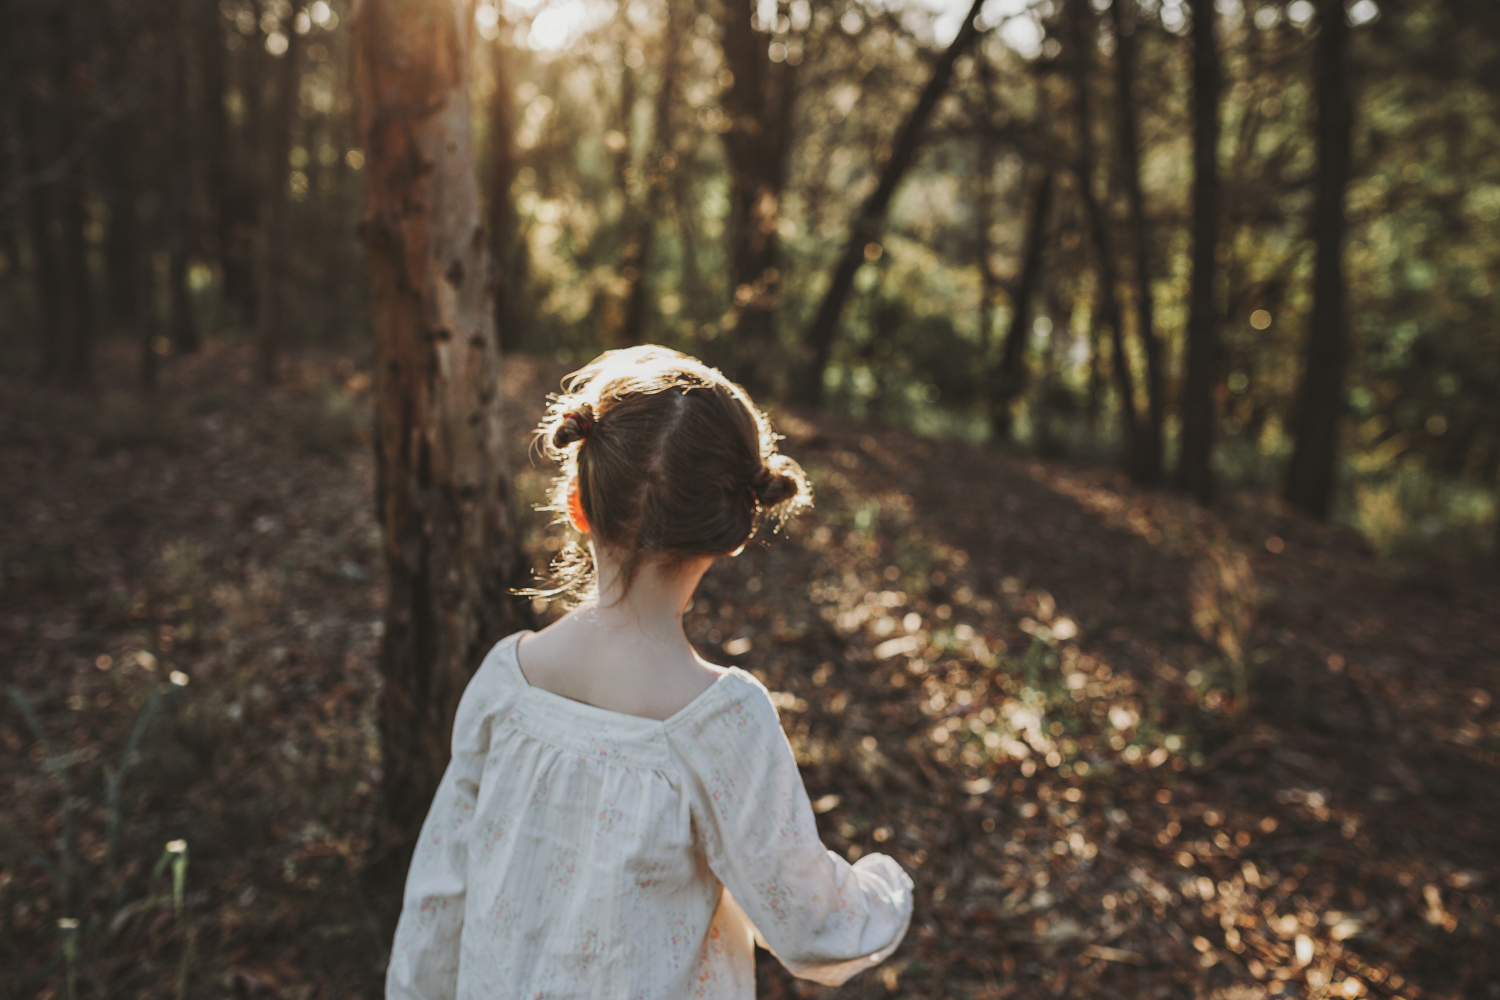 Girl explores forest during beautiful natural photo session.